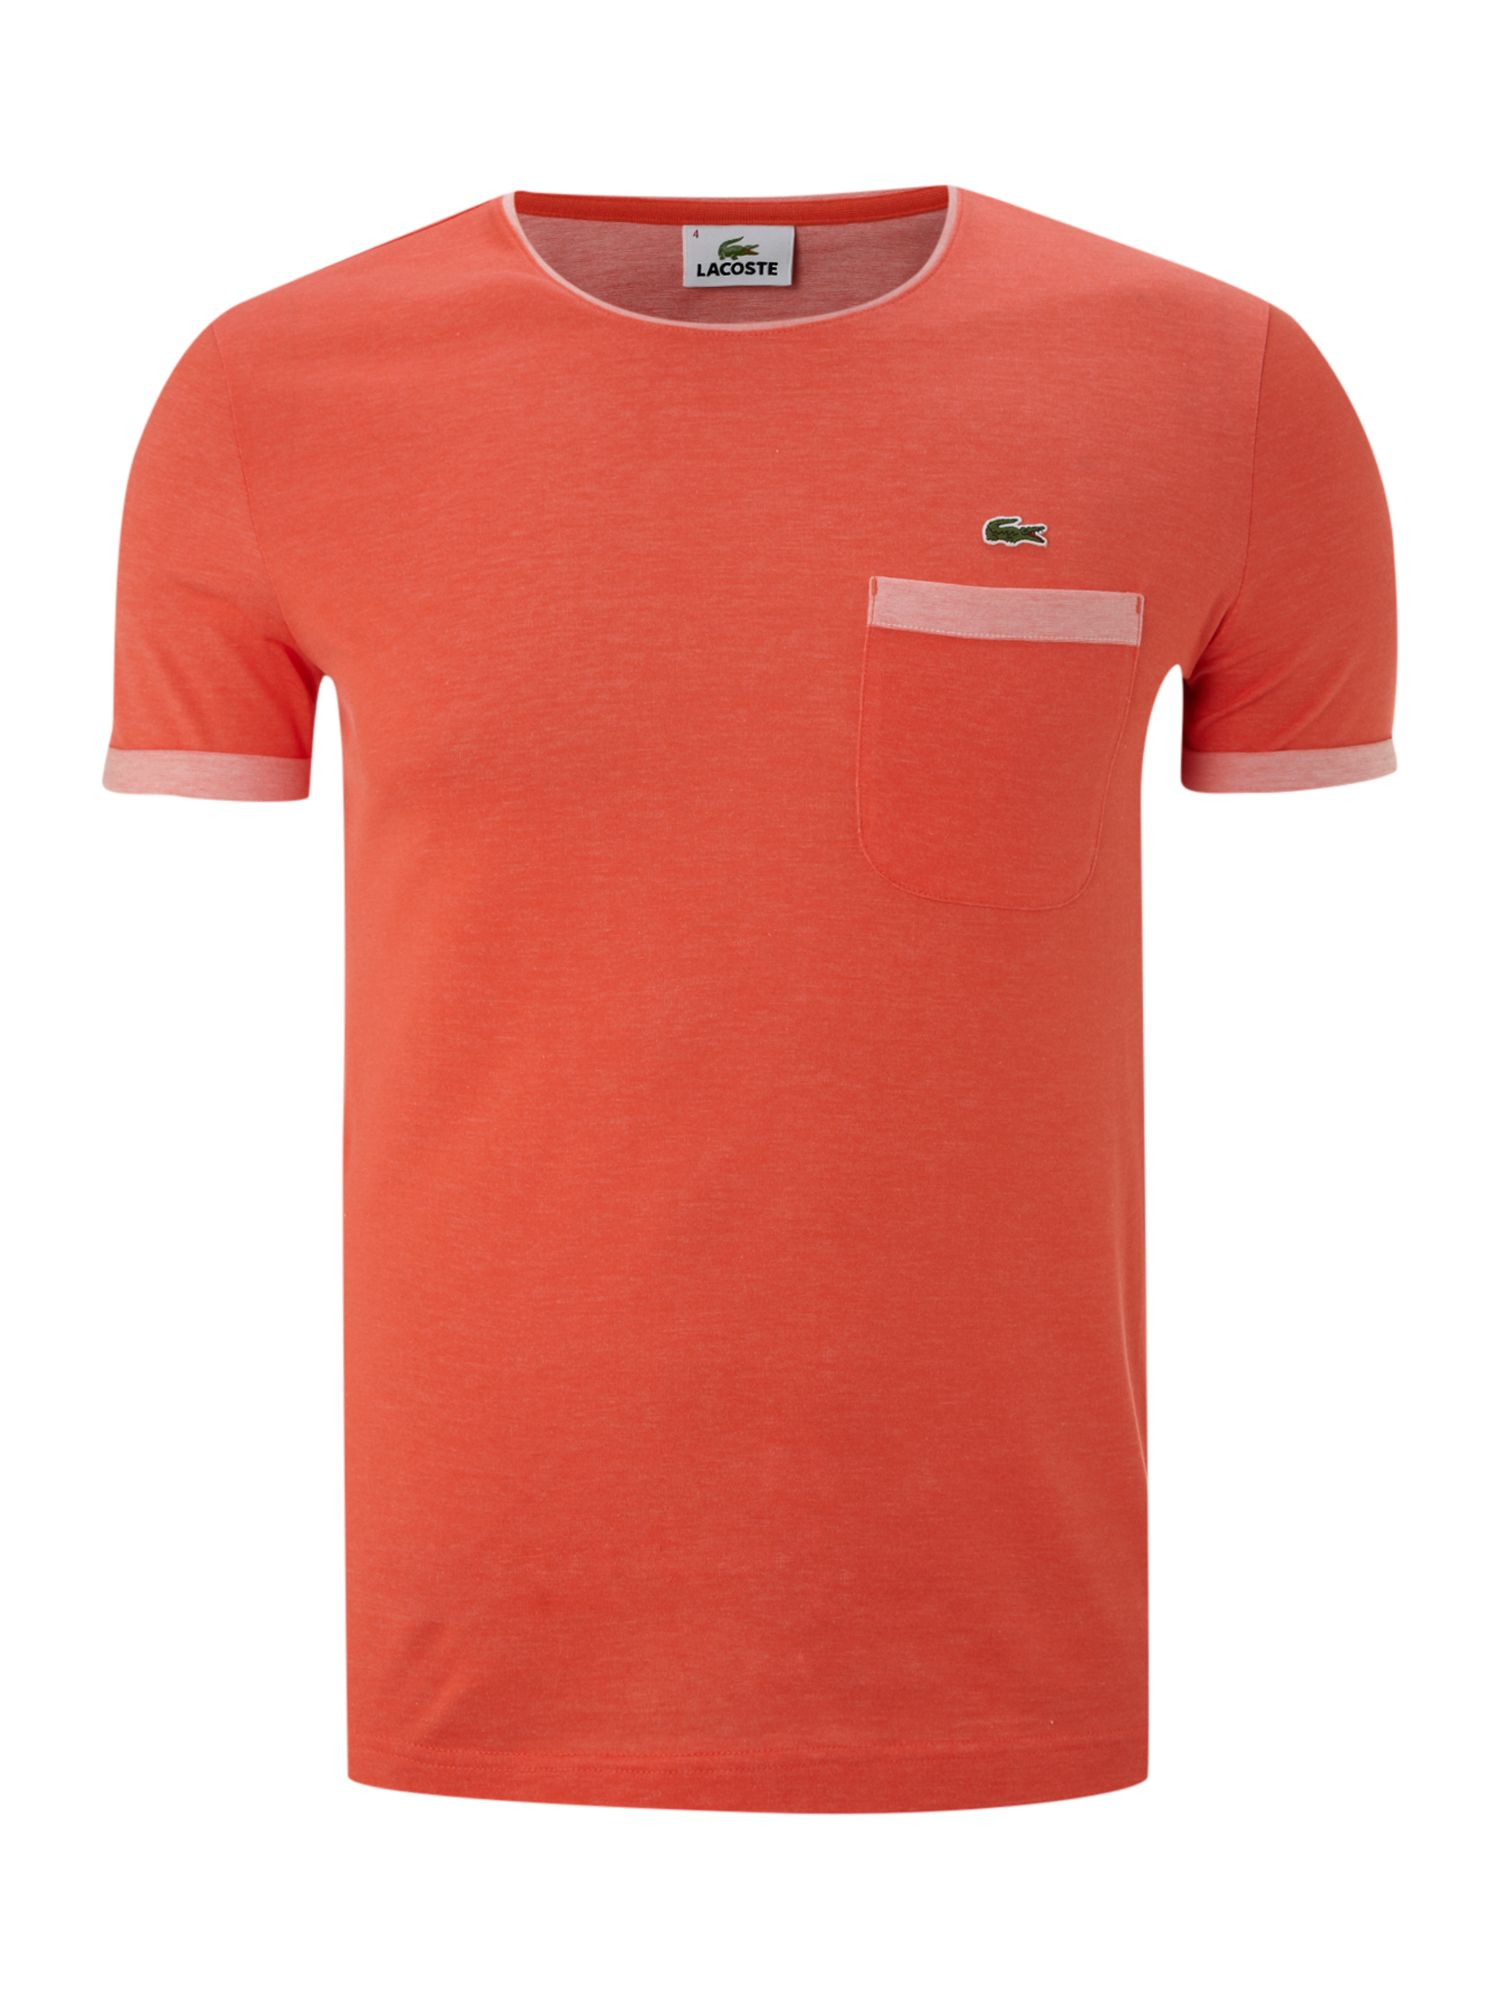 Crew neck T-shirt with chest pocket detail